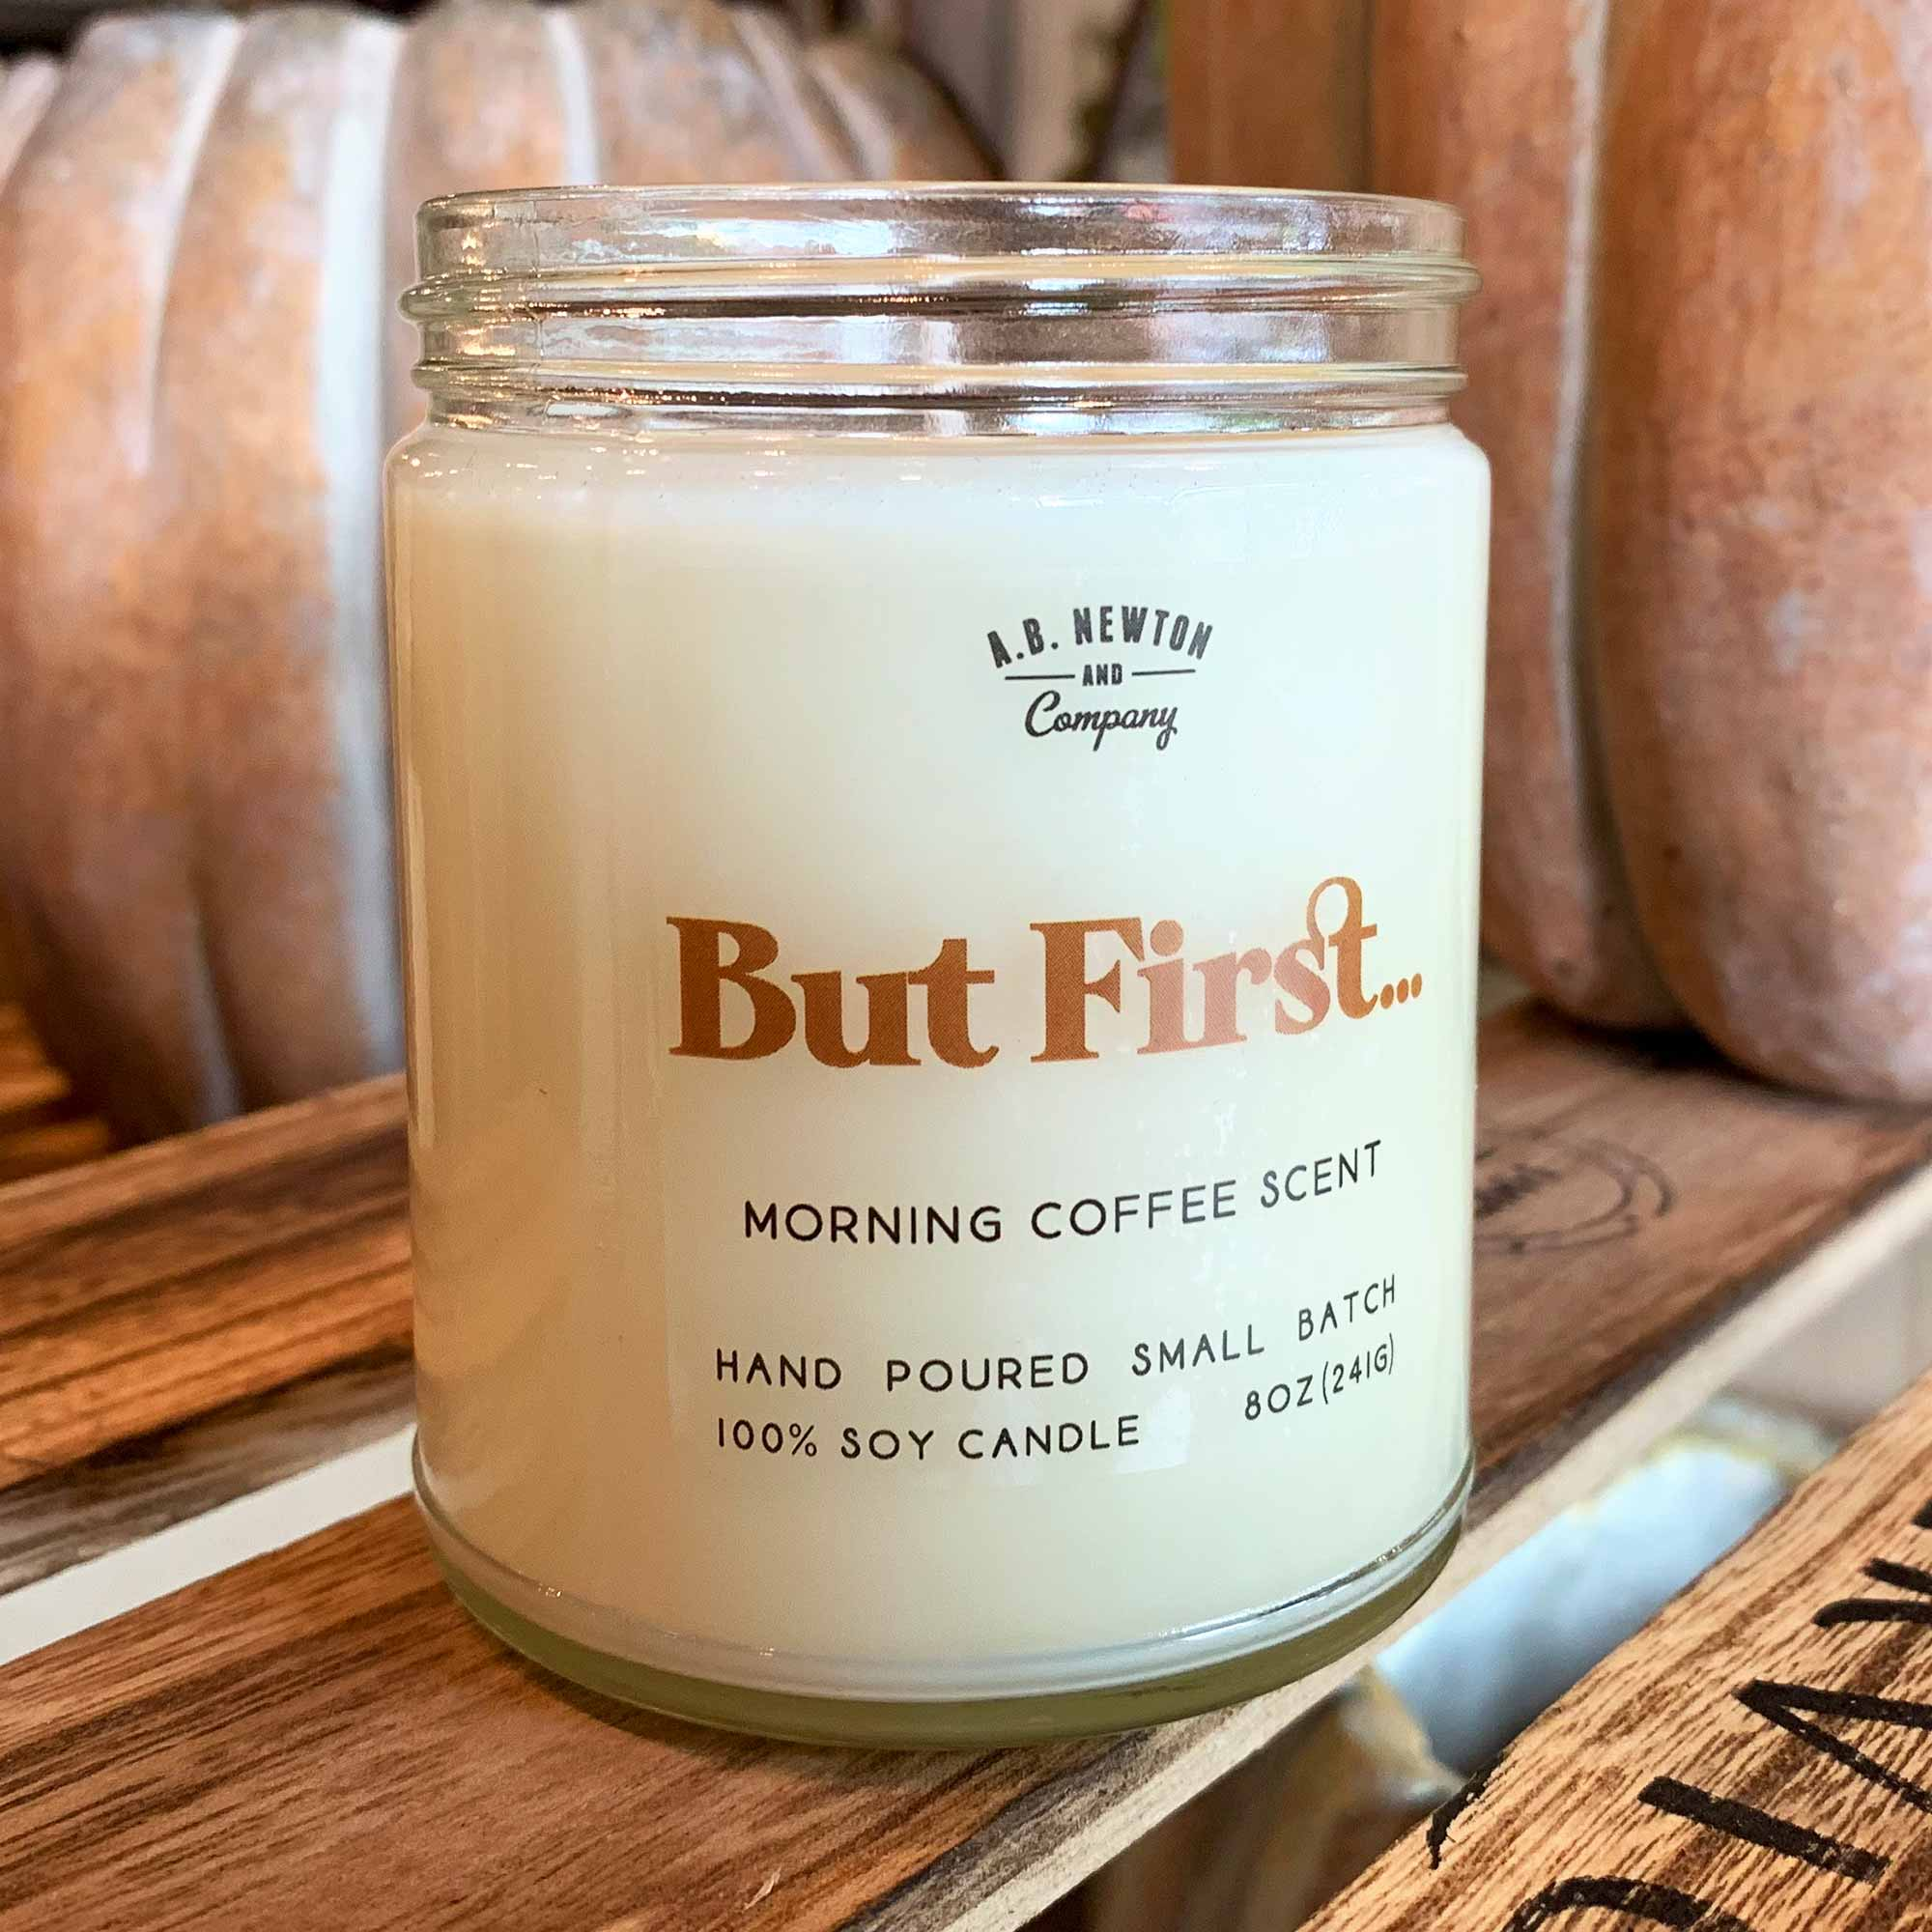 But First Morning Coffee Scented 8oz Soy Candle Hand Poured Small Batch - A. B. Newton and Company